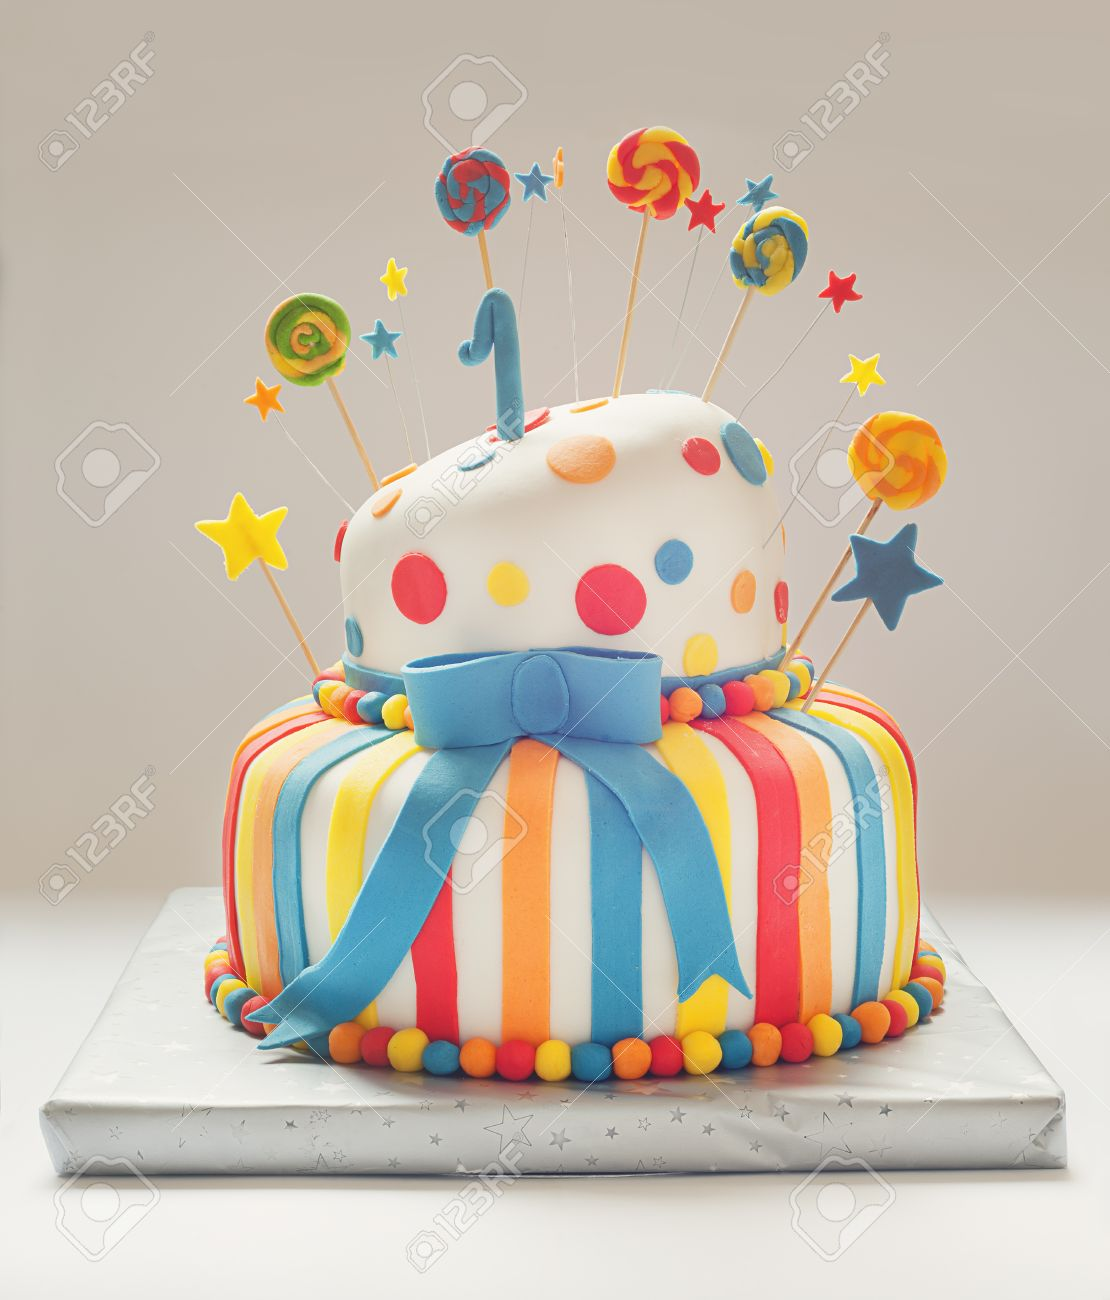 Phenomenal Funny Birthday Cake With Number One On Top Sweet Colorful Personalised Birthday Cards Paralily Jamesorg